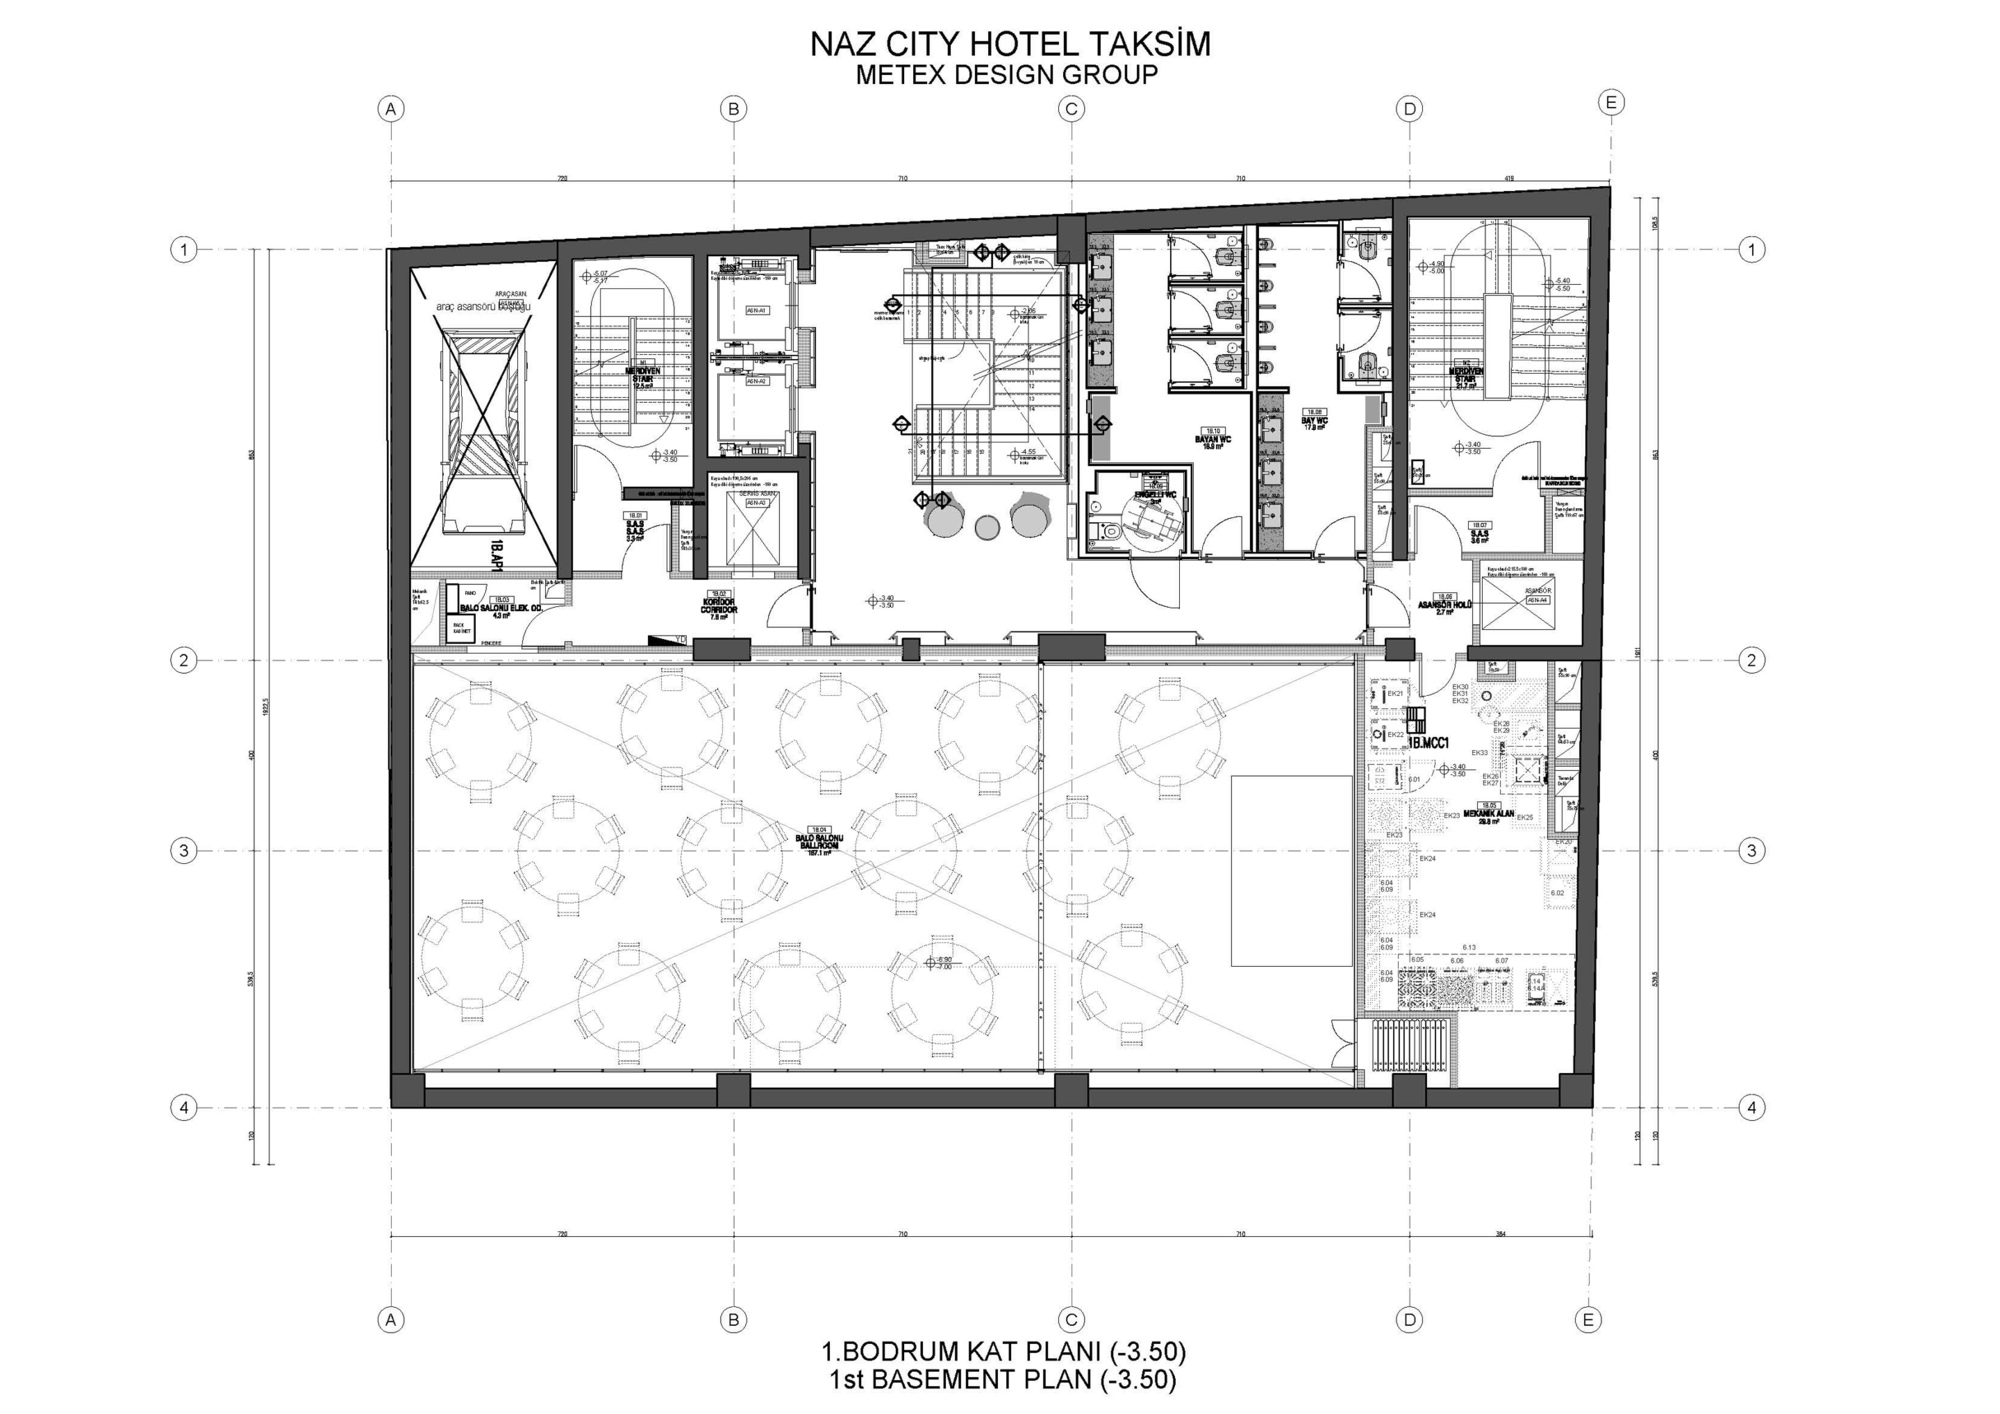 Gallery Of Naz City Hotel Taksim / Metex Design Group